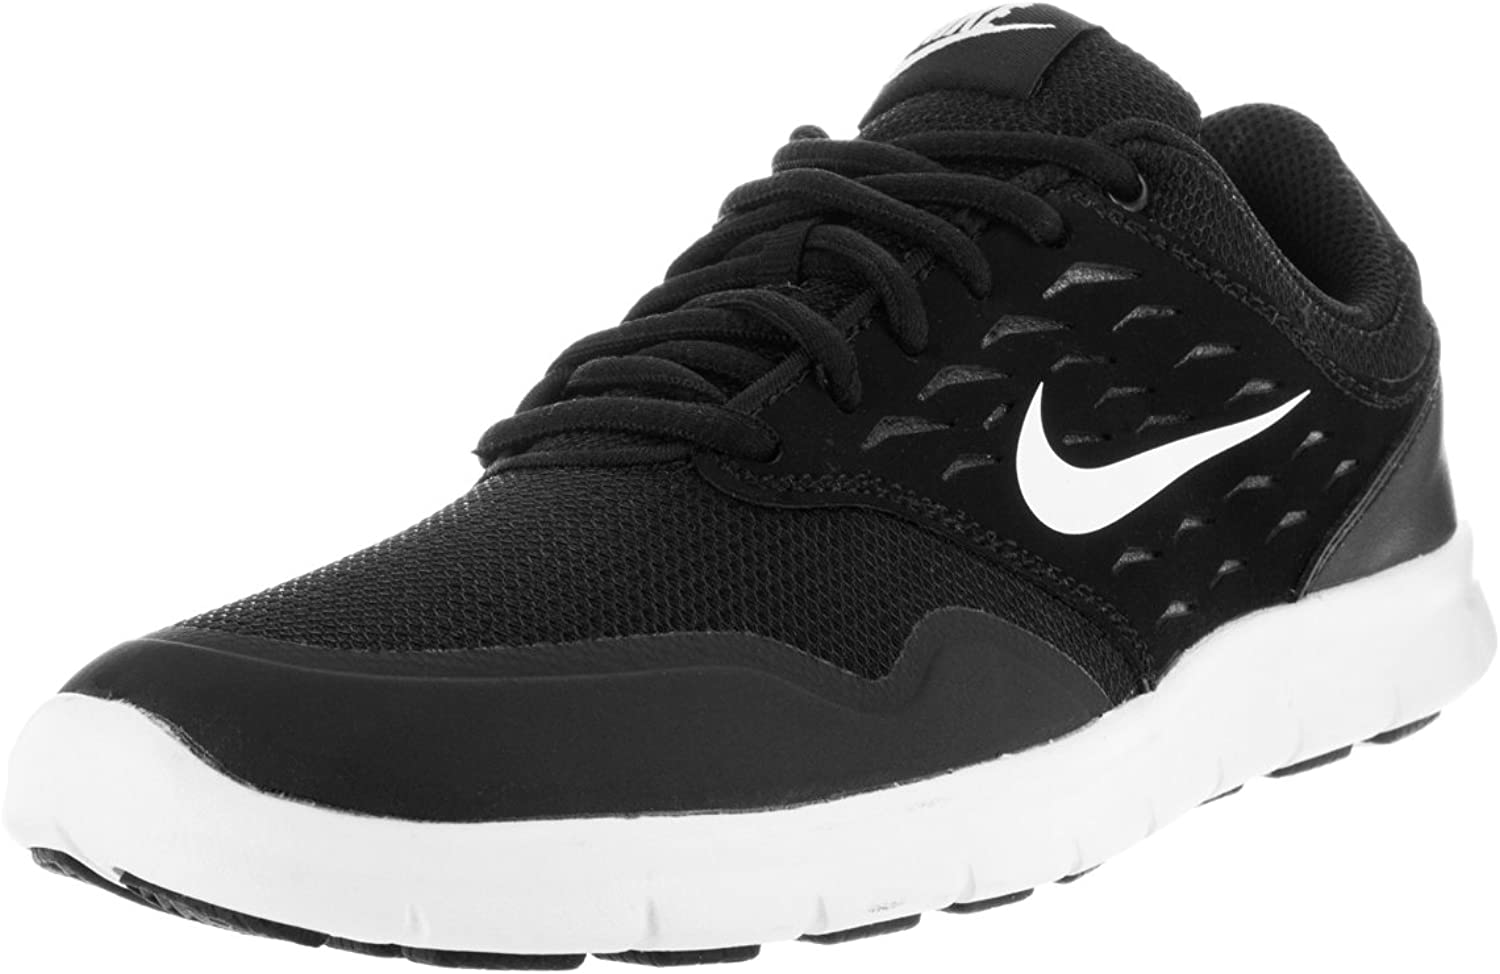 Nike Womens Orive Nm Cool Grey Hot Lava White Ankle-High Synthetic Running shoes